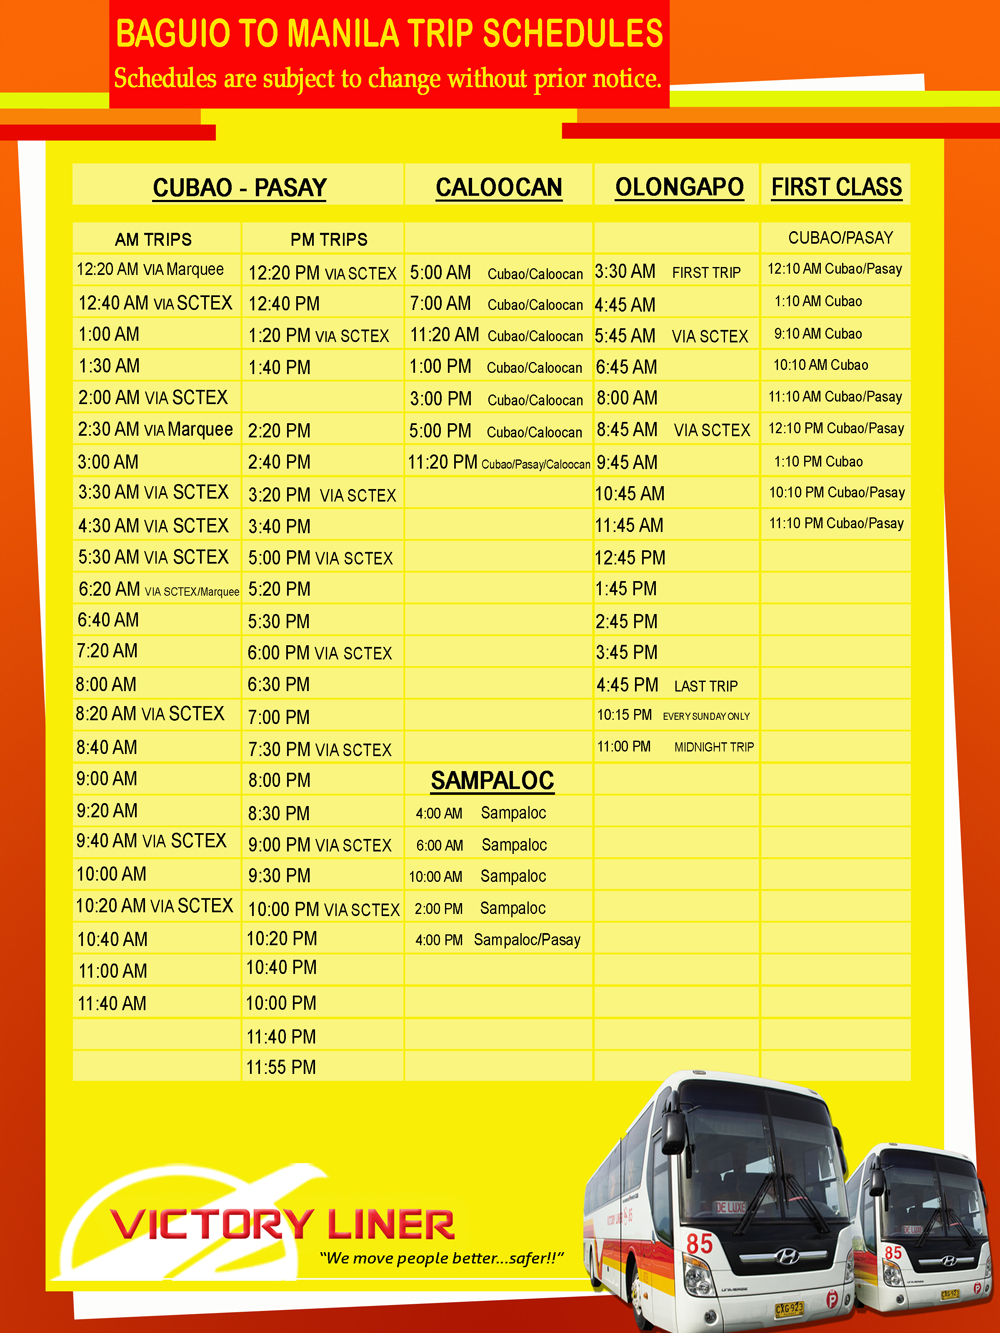 South Bound (From Baguio) Victory Liner Deluxe Bus Schedule